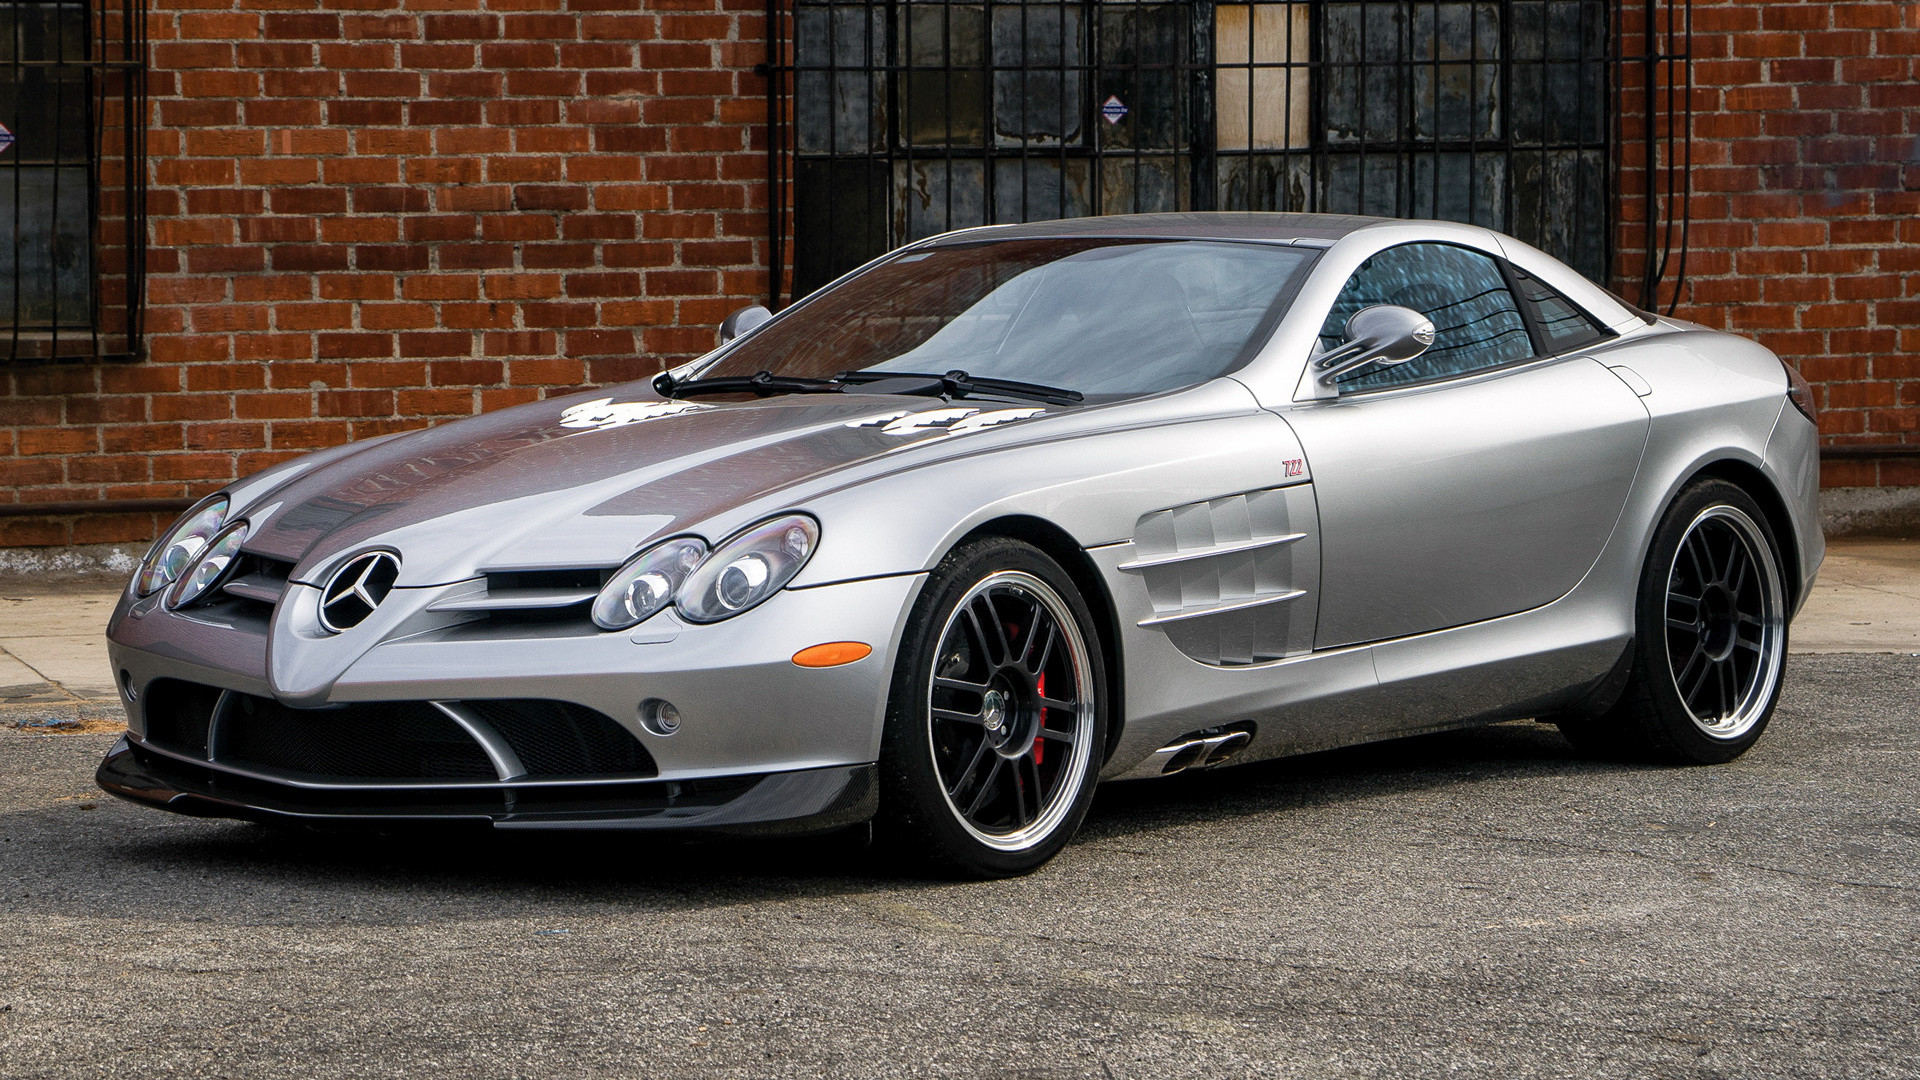 Mercedes benz slr mclaren wallpaper 62 images for Mercedes benz slr